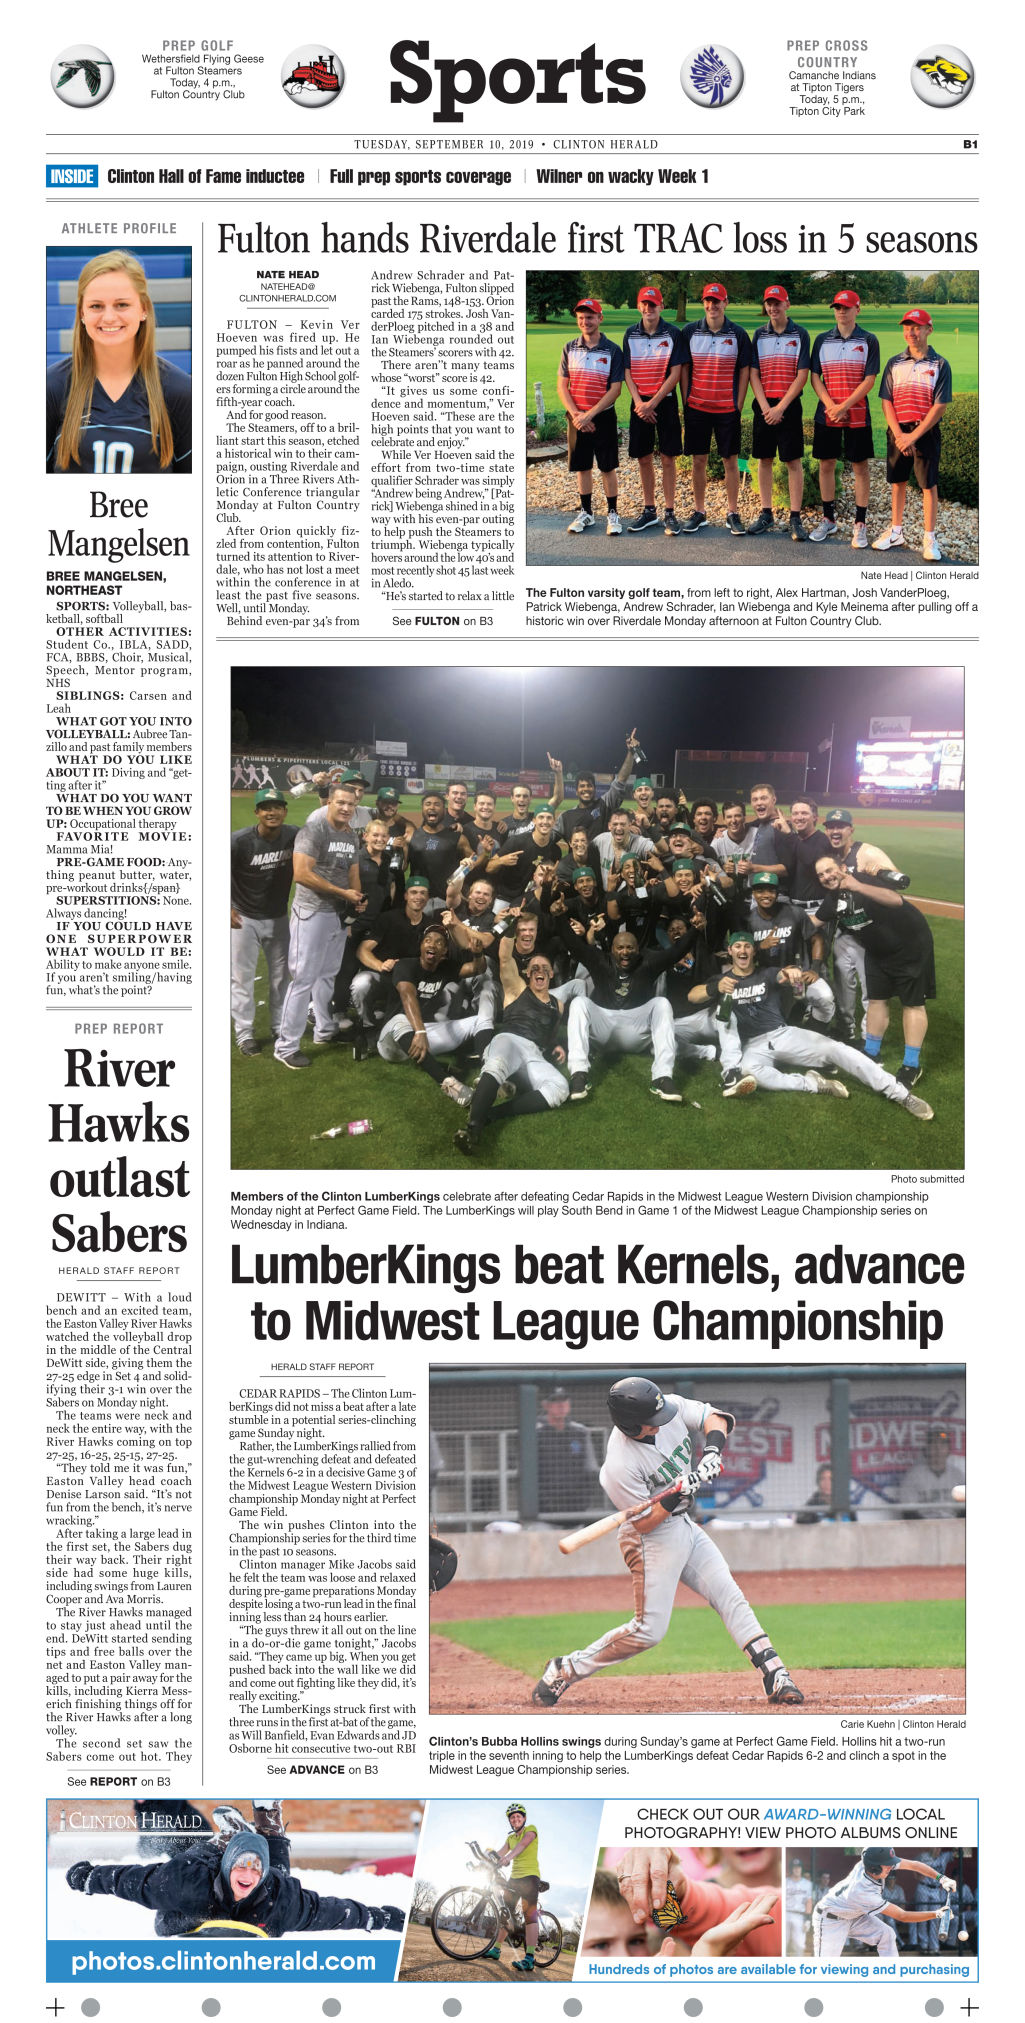 Sept. 10, 2019 Sports page